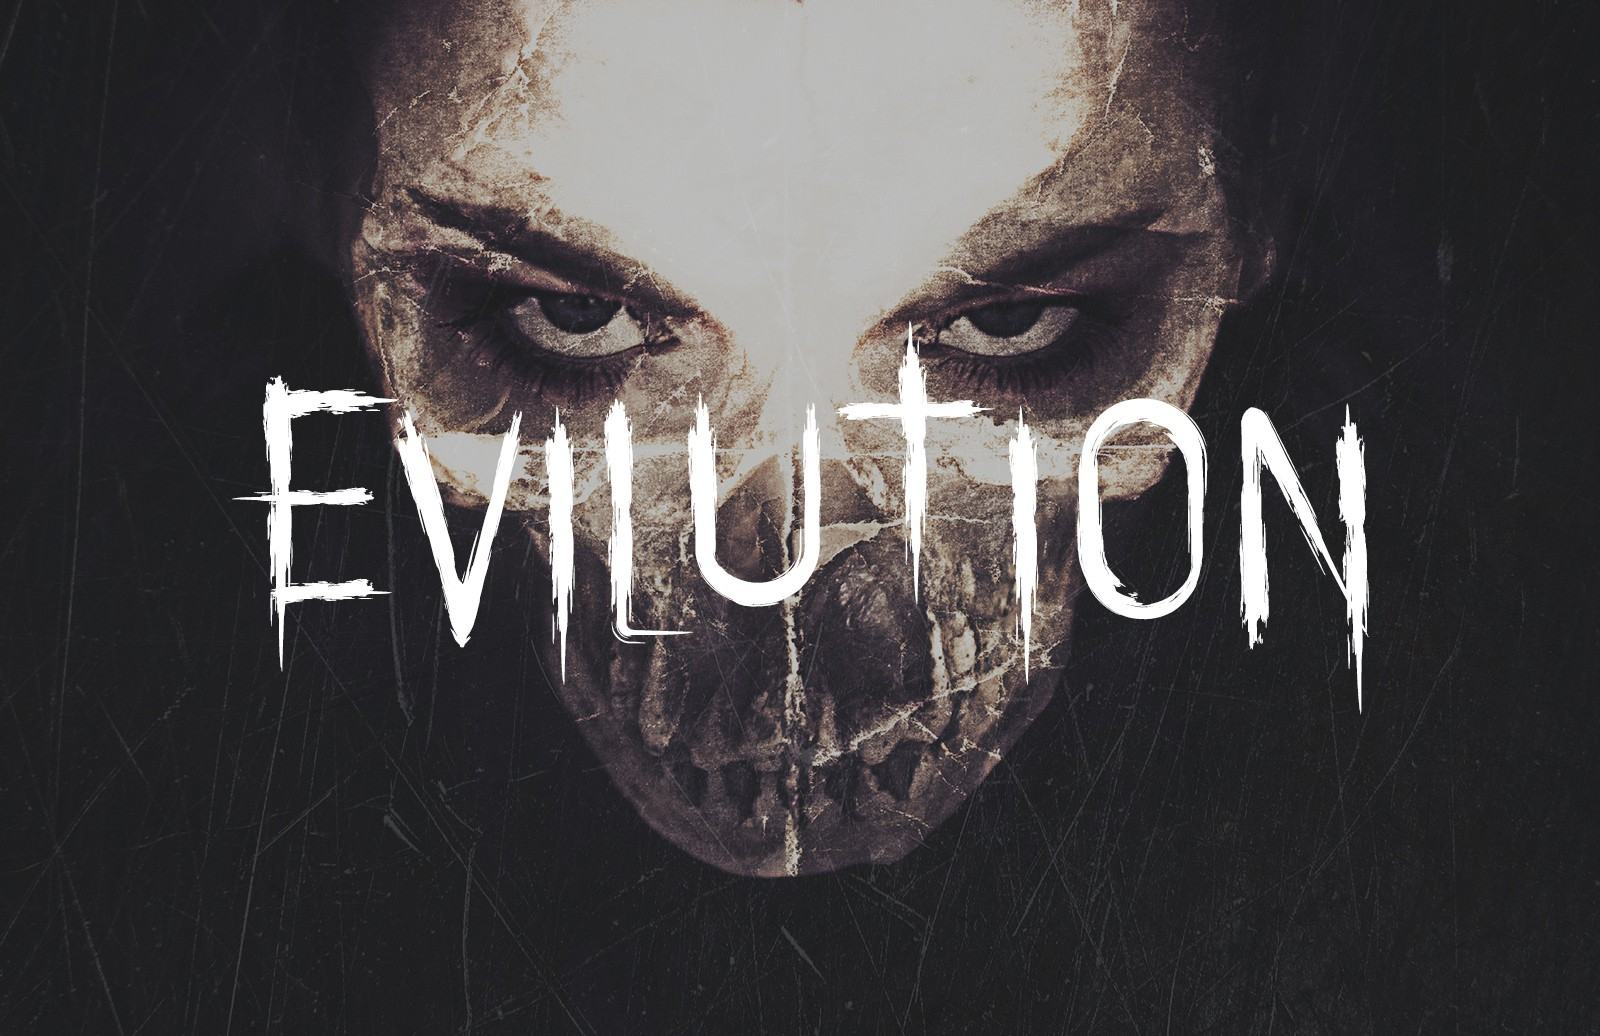 Large Evilution  Distressed  Horror  Typeface  Preview 1A